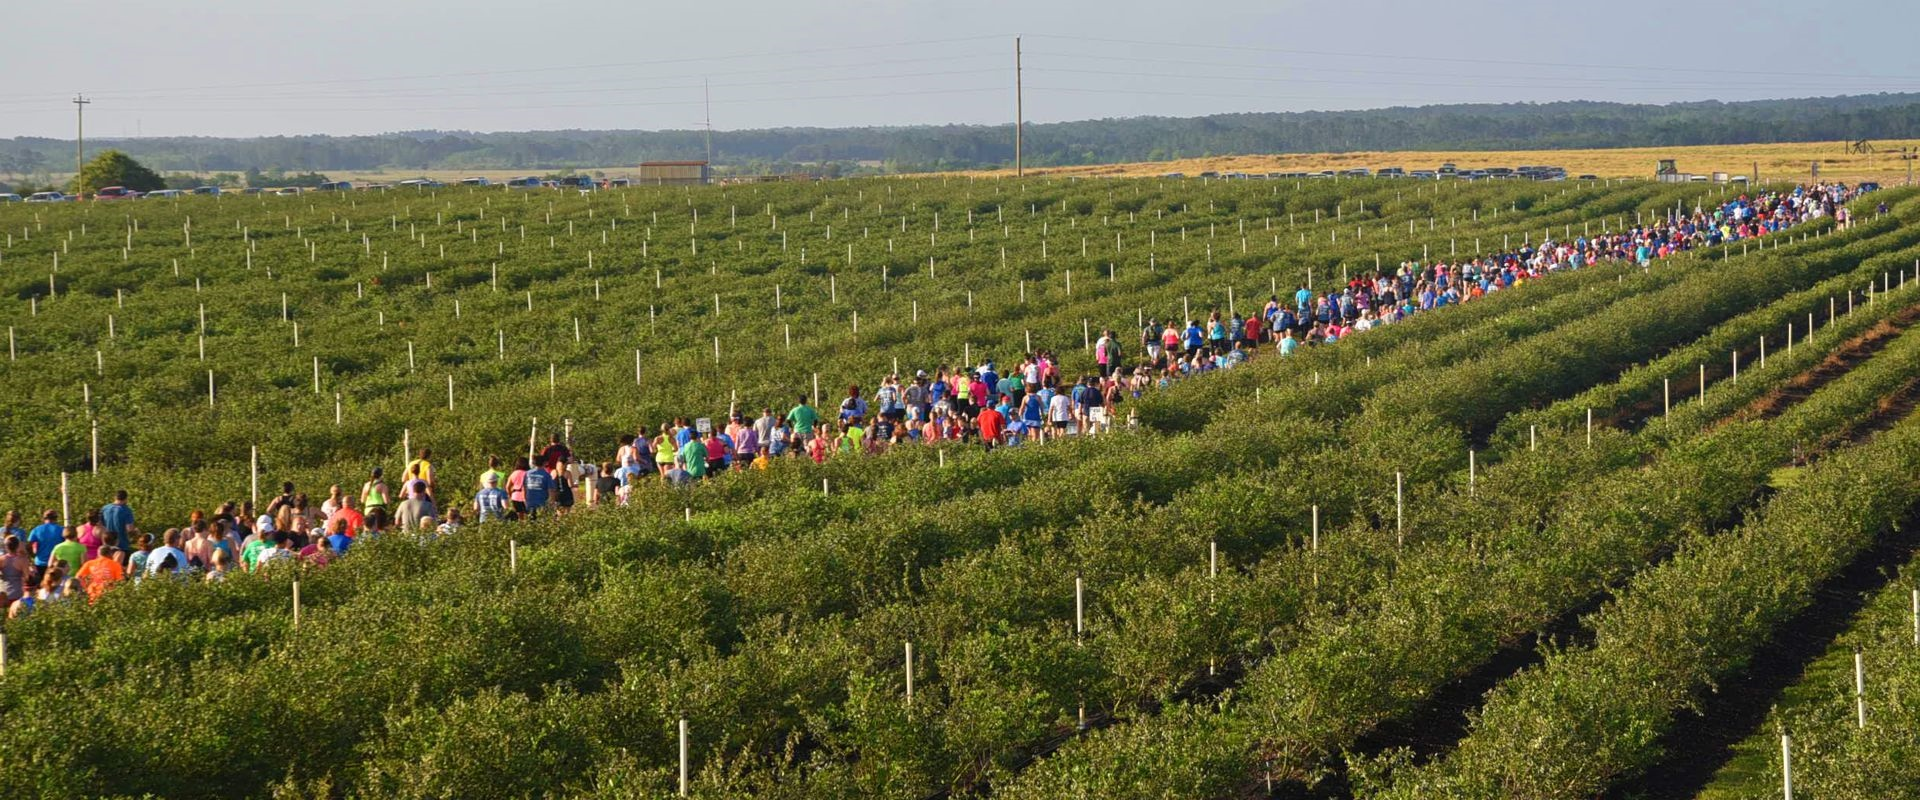 U-RUN, U-PICK, BLUEBERRY 5K - April 27